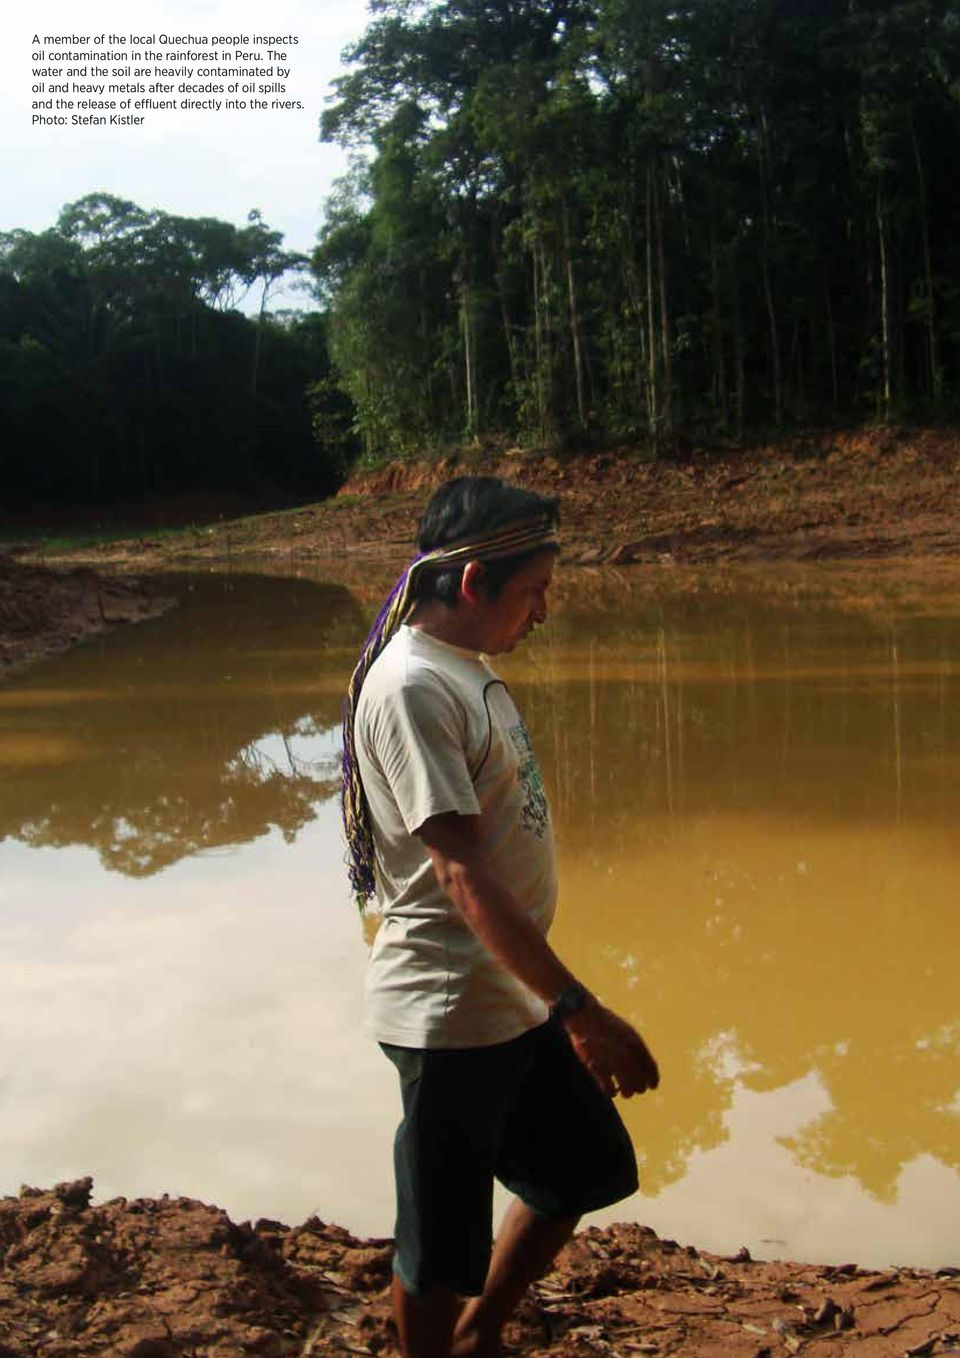 The water and the soil are heavily contaminated by oil and heavy